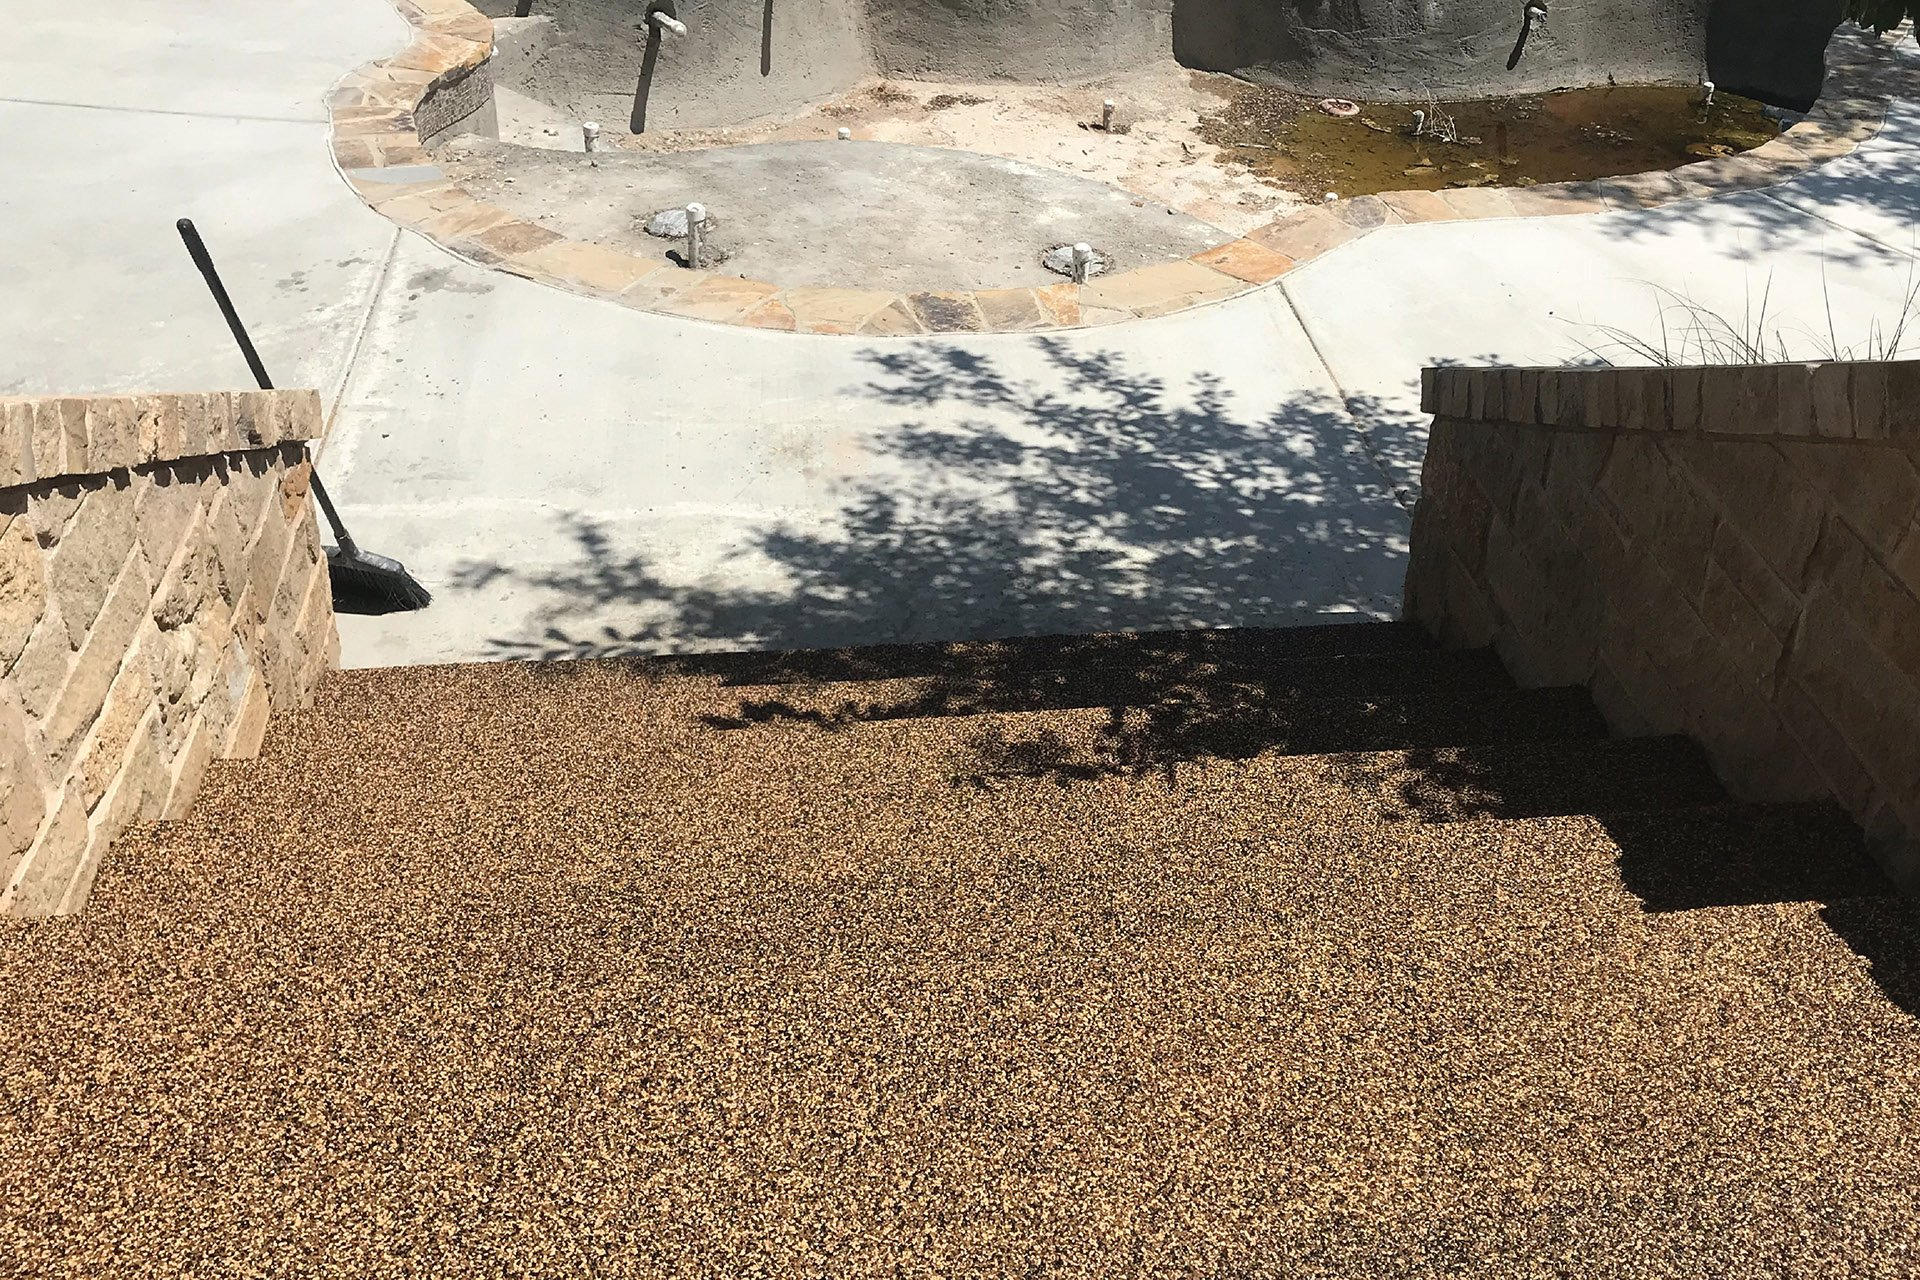 Why Choose Rubaroc For Your Home or Business?